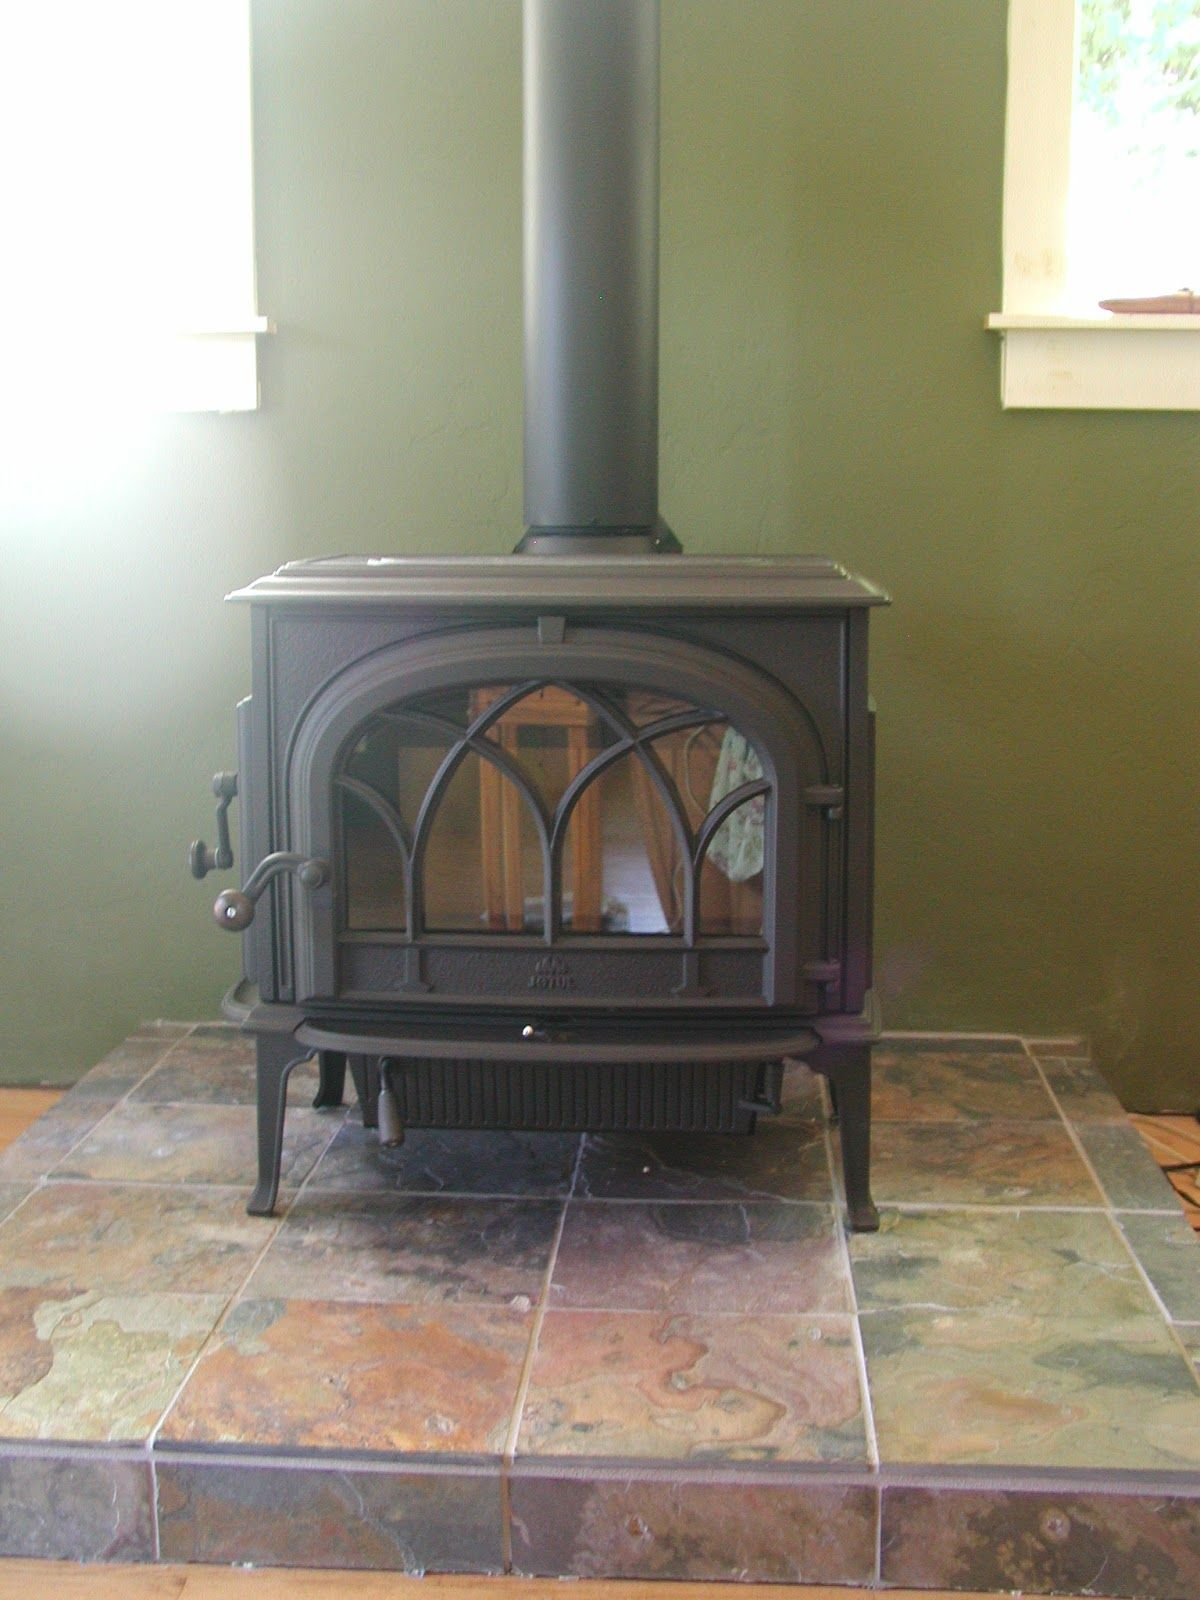 wood stove hearth - Google Search | wood stoves | Pinterest ...